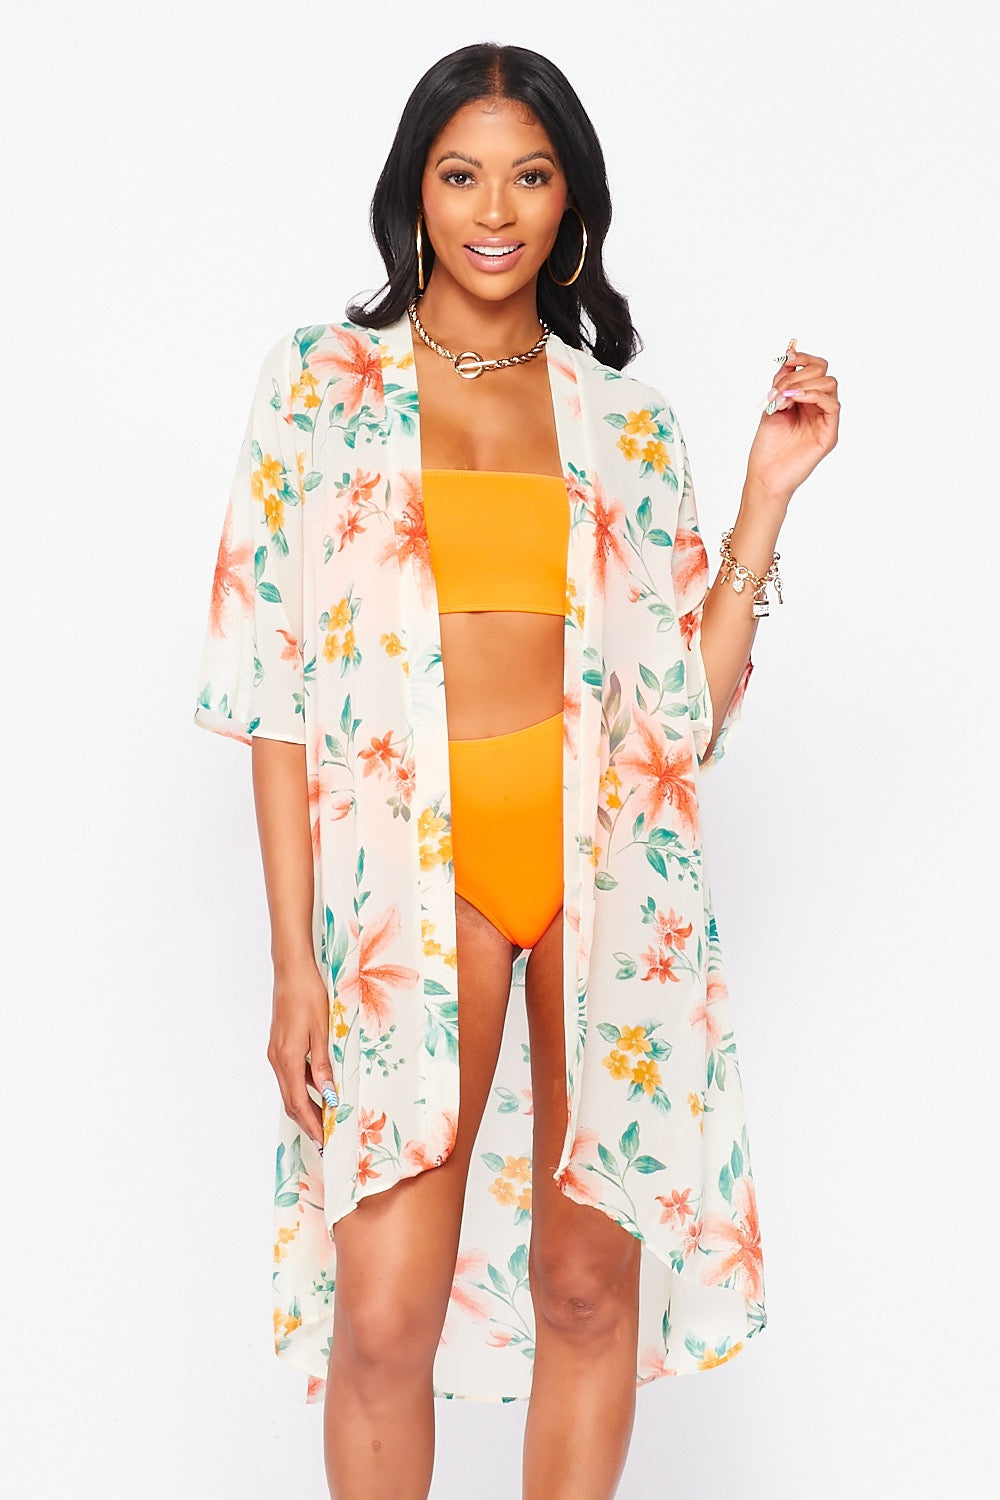 Floral Print Swimsuit Cover Up in Ivory and Yellow